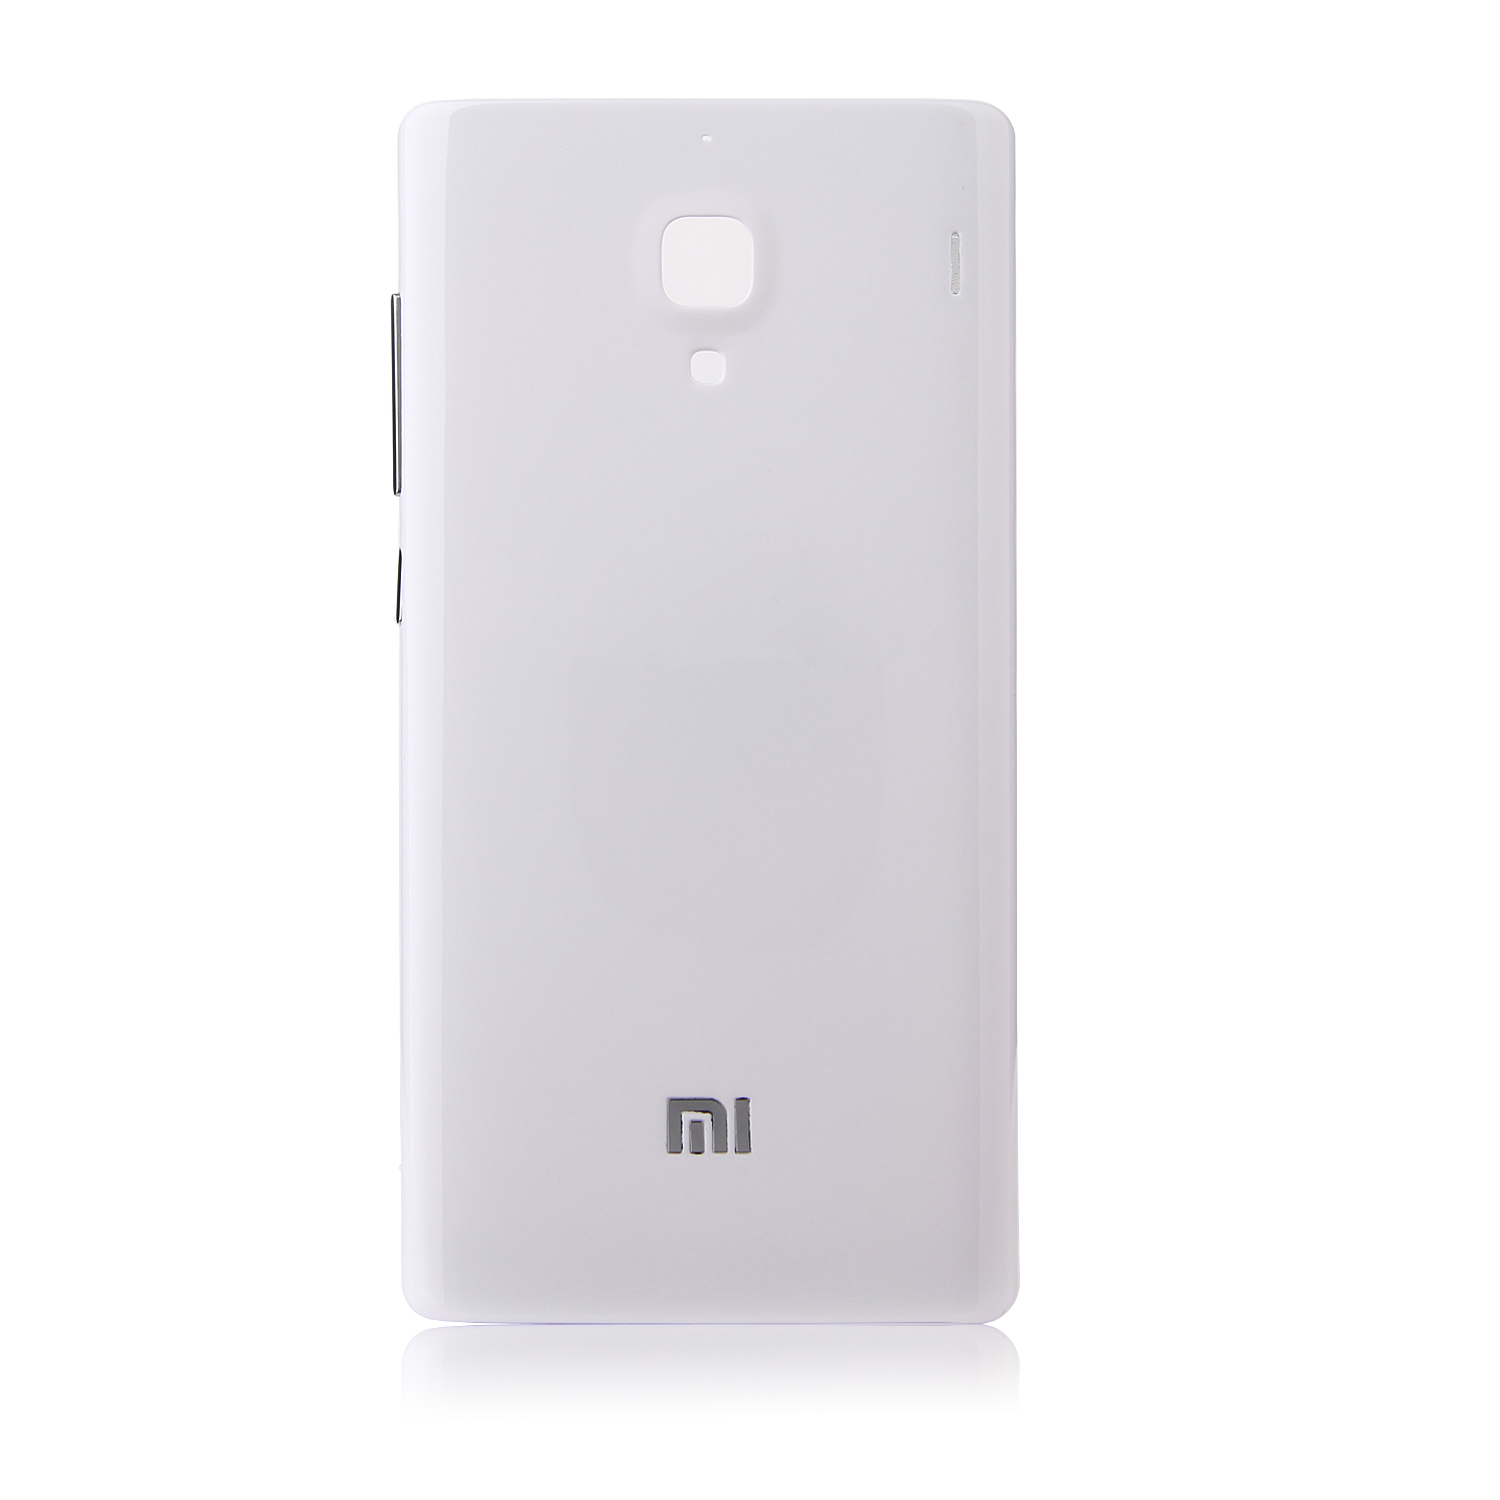 Replacement Battery Cover Back Case for XIAOMI Redmi 1S Smartphone White